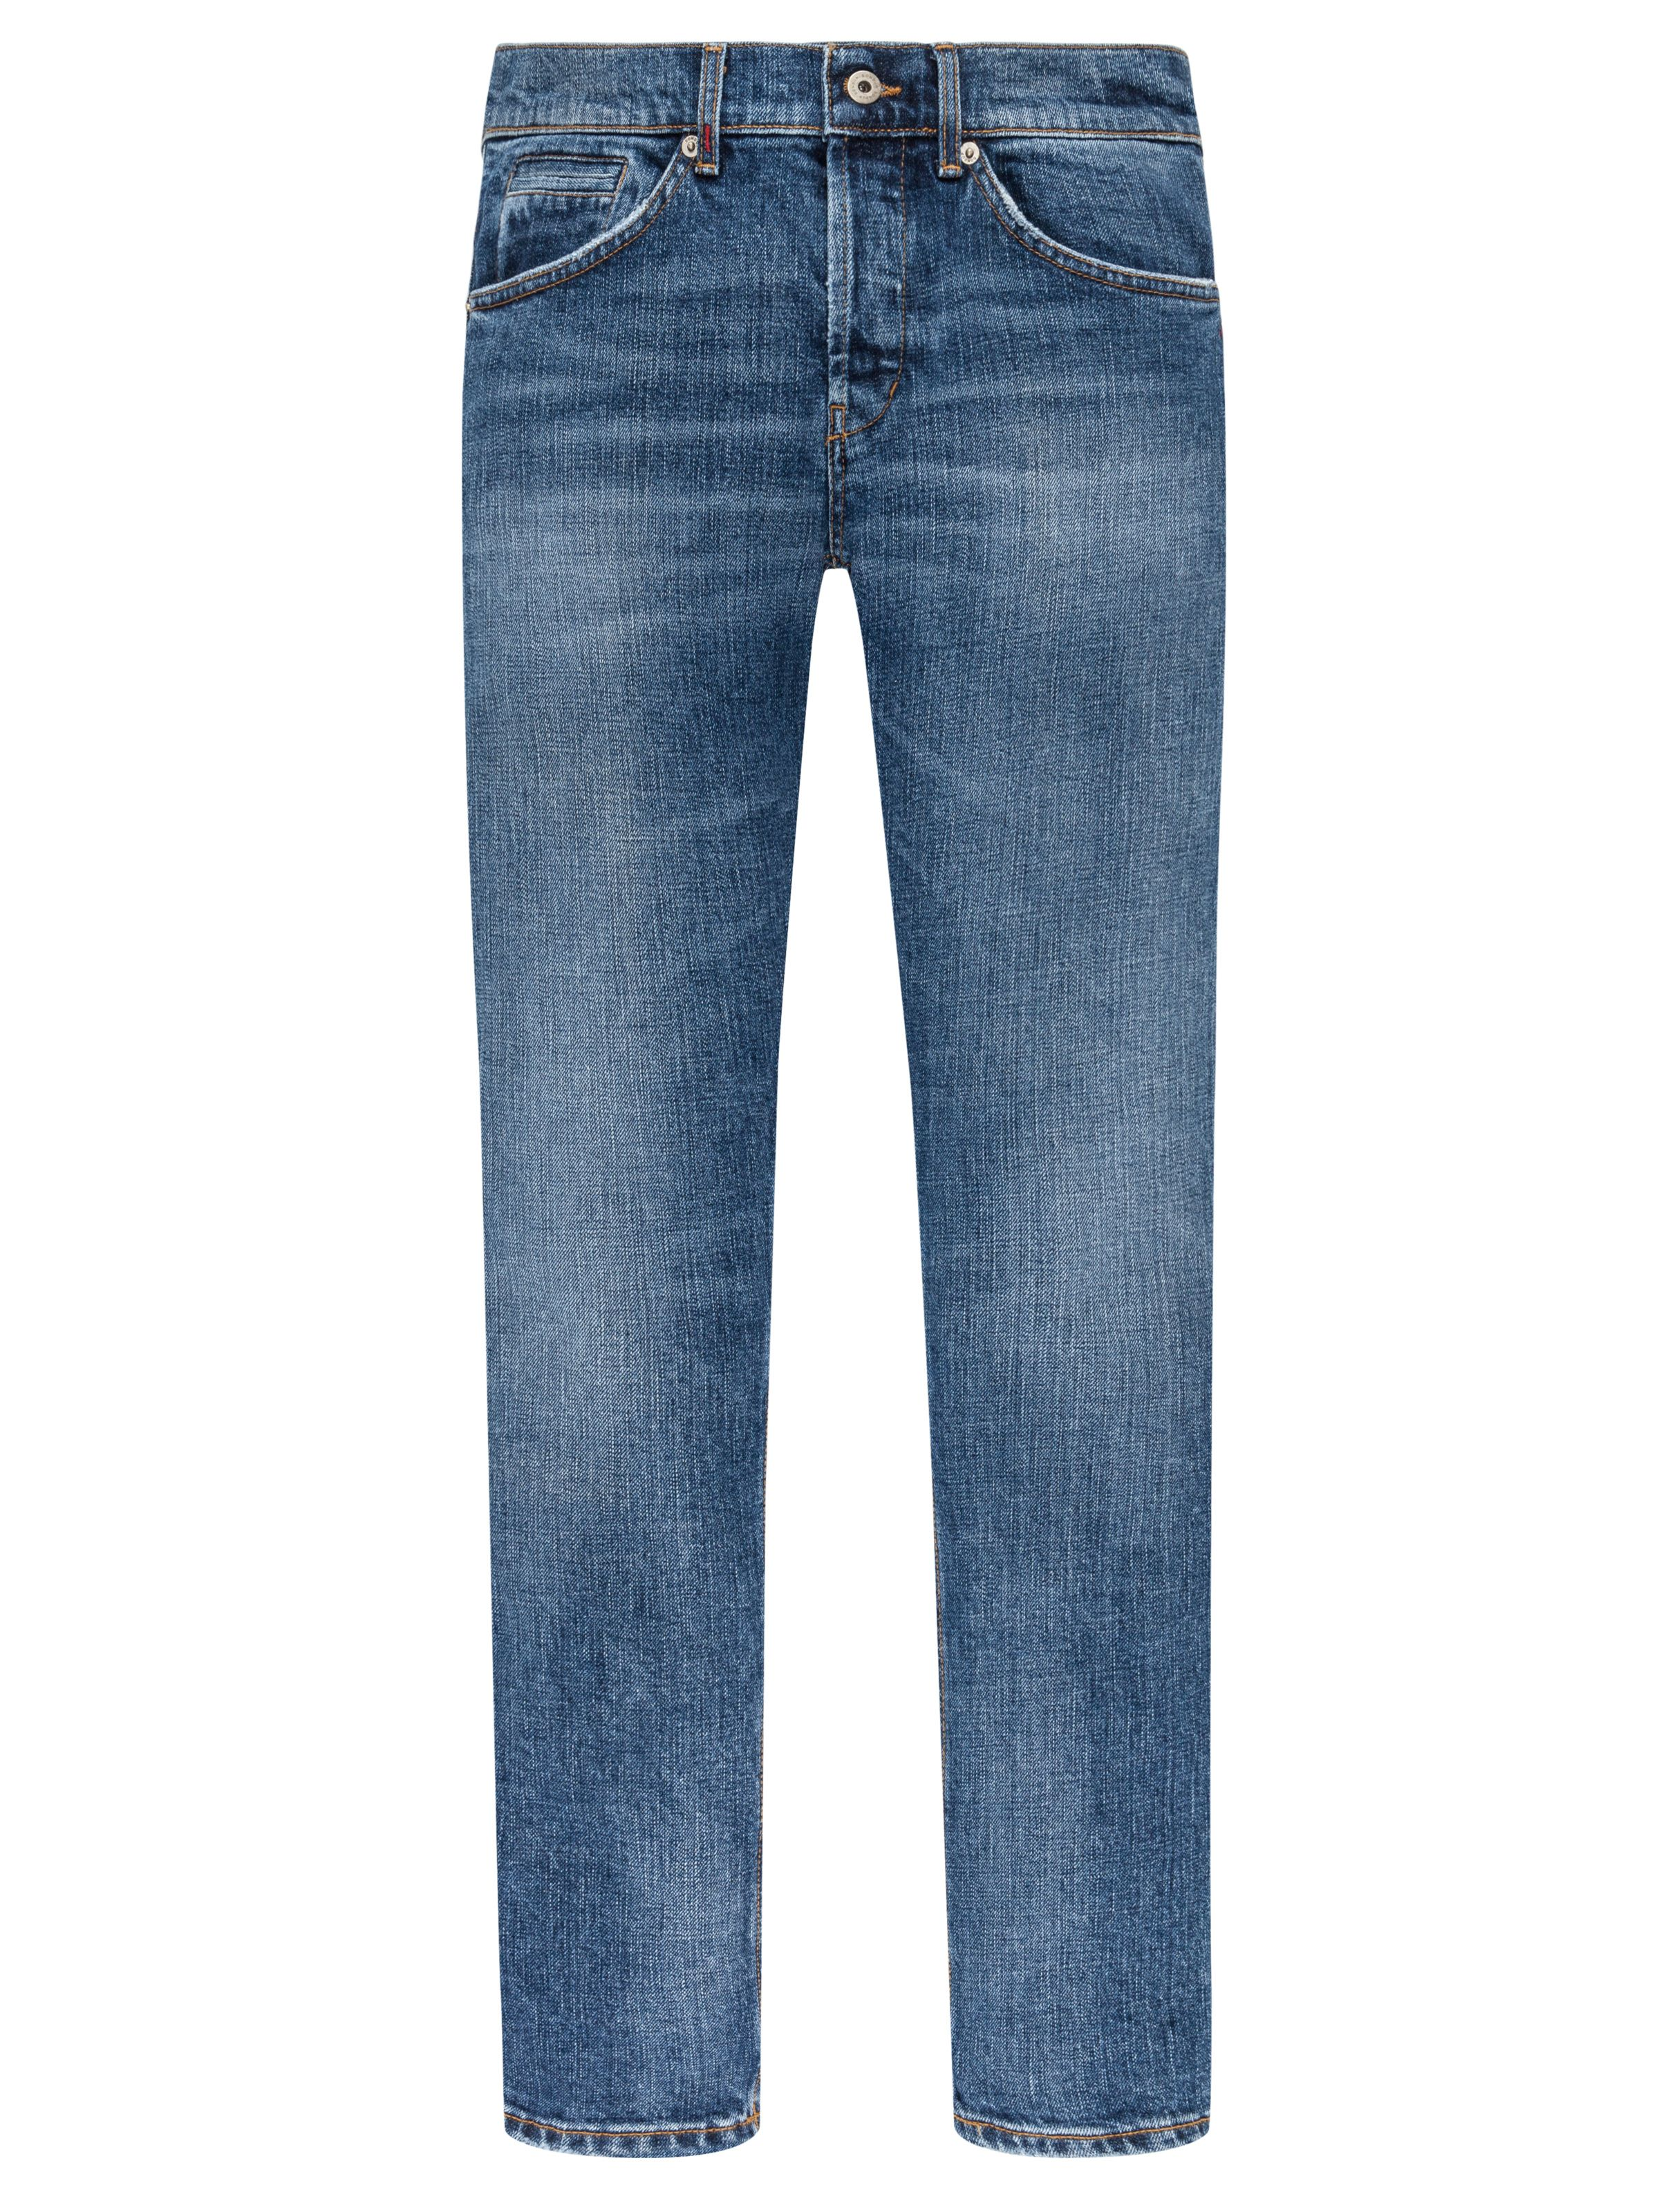 Herren Regular Fit Jeanshose Straight Cut Denim Qualität Braun Slim  Stonewashed 497dcbd658